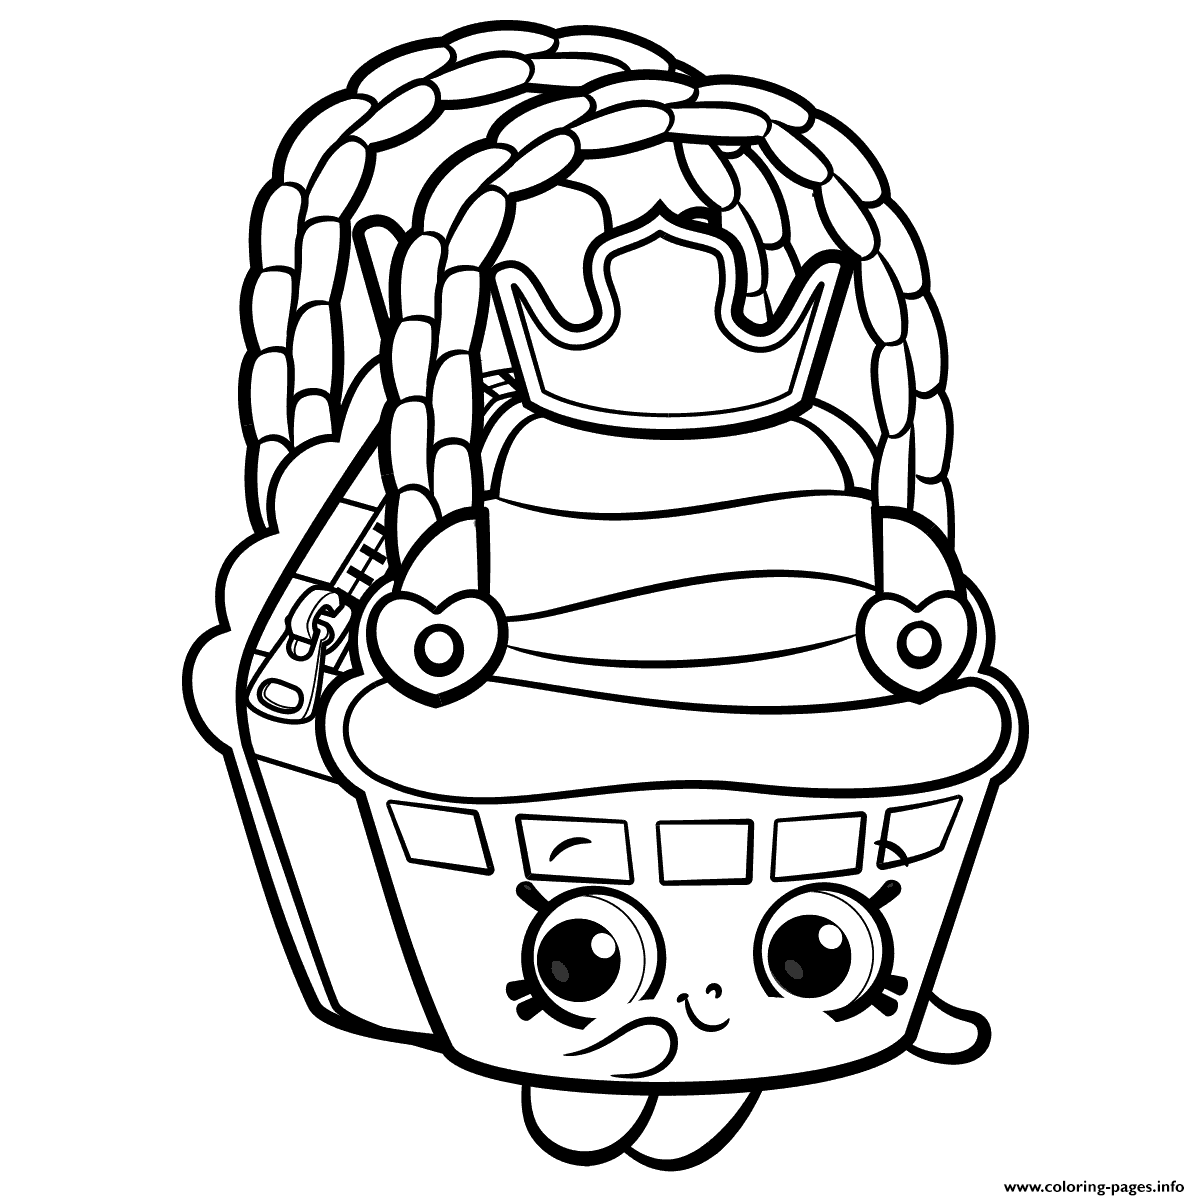 Print Cute Shopkins Season 8 Coloring Pages Creation Coloring Pages Shopkins Colouring Pages Coloring Pages Inspirational